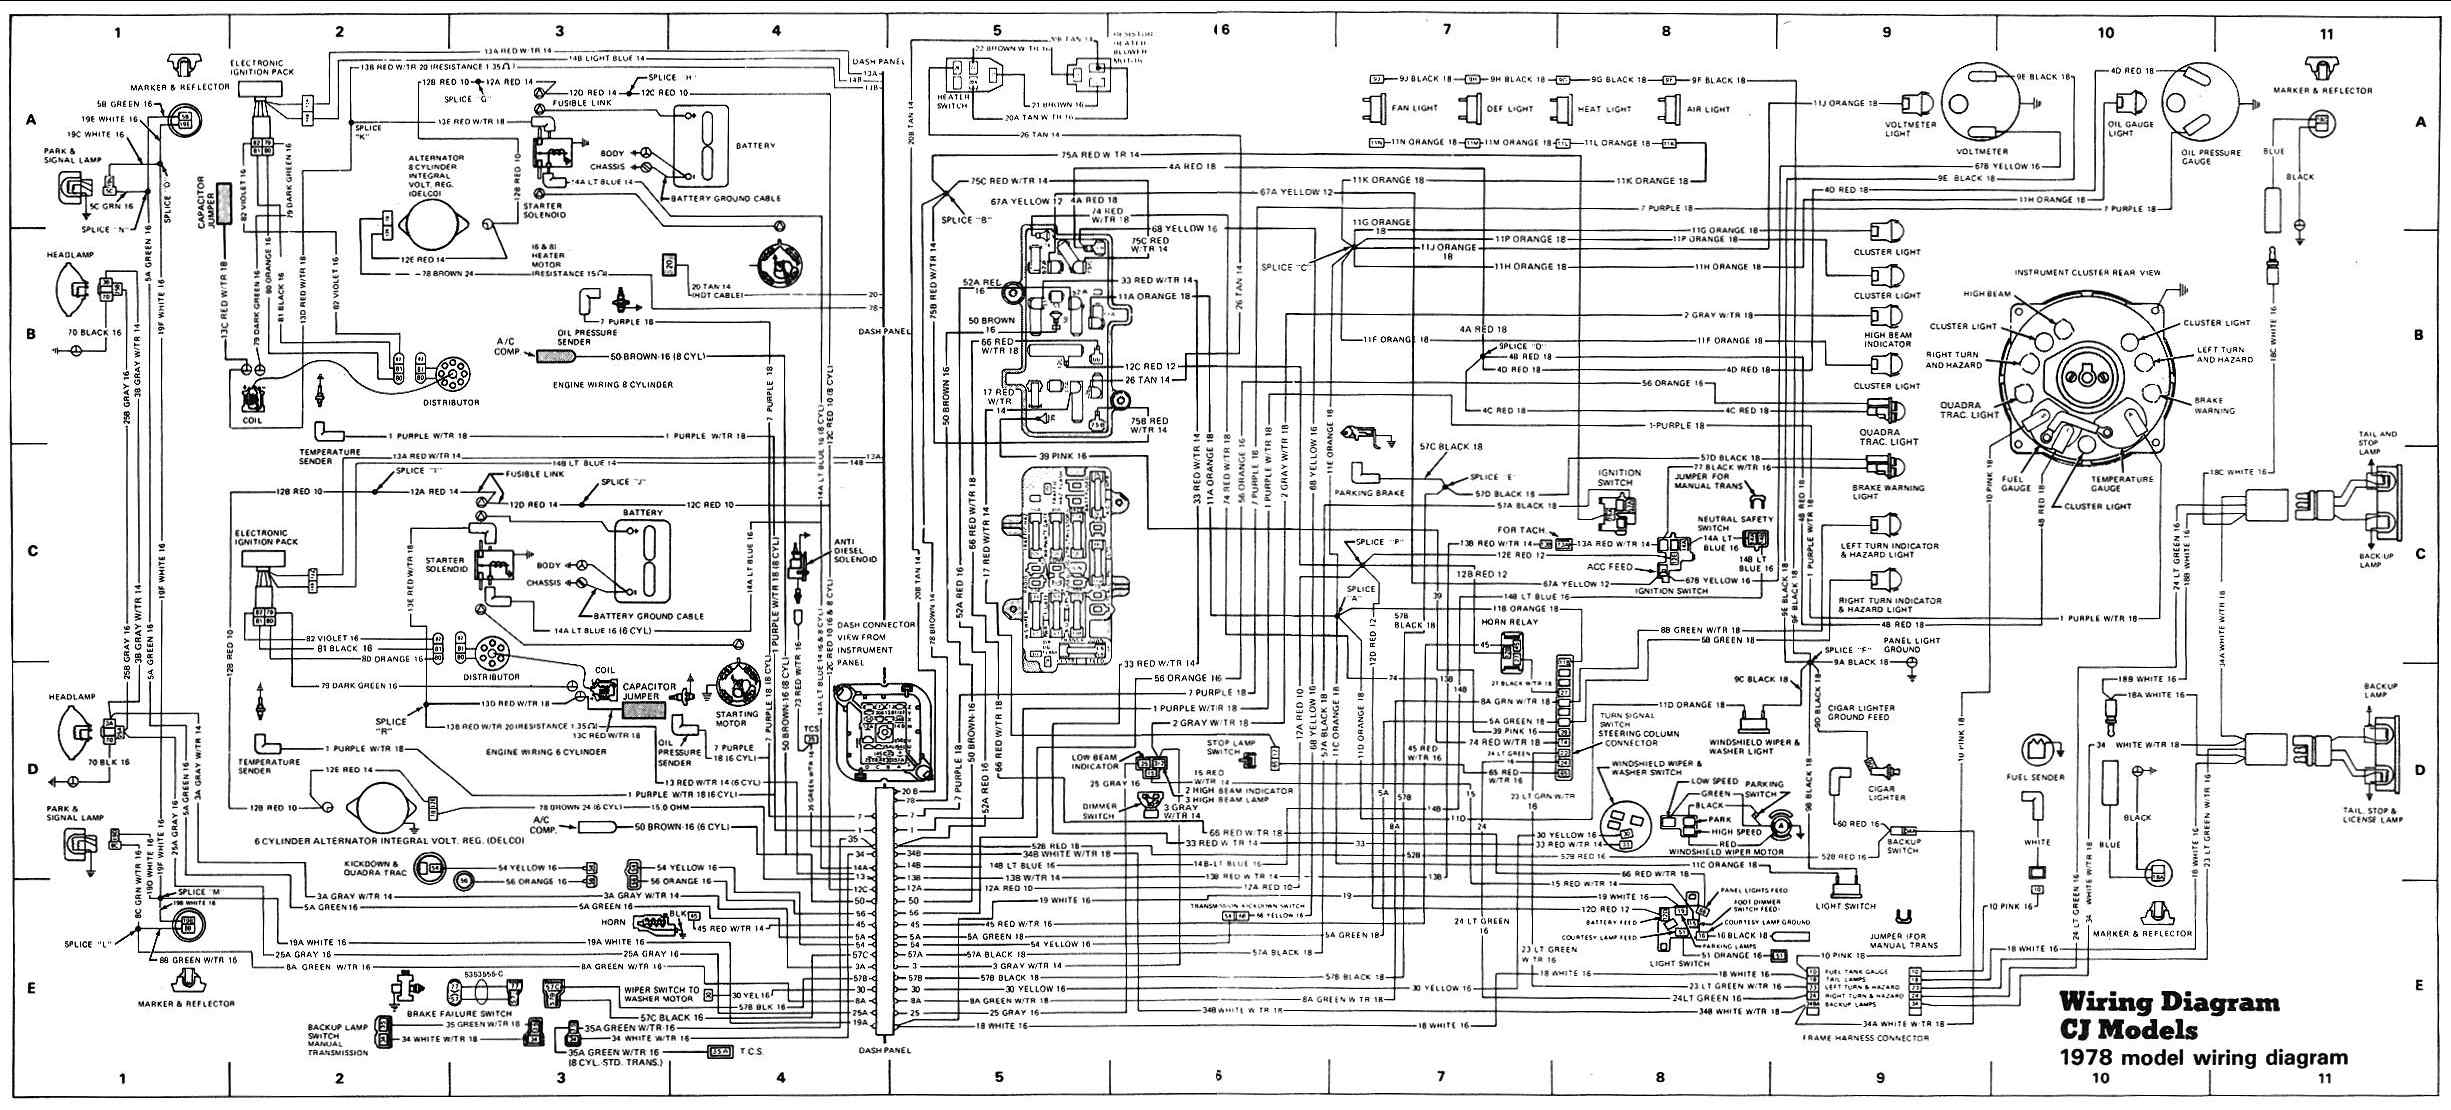 Jeep - Car Manuals PDF & Fault Codes DTC  Jeep Liberty Control Wiring Diagrams on jeep liberty shift solenoid, subaru baja wiring diagram, saturn aura wiring diagram, 2008 jeep wiring diagram, lexus gx wiring diagram, jeep liberty relay location, kia forte wiring diagram, jeep liberty fan belt, jeep liberty ignition wiring, 2004 jeep wiring diagram, isuzu hombre wiring diagram, jeep liberty no crank, jeep wrangler wiring diagram, jeep liberty distributor, jeep liberty clutch, mercury milan wiring diagram, volkswagen golf wiring diagram, jeep liberty engine swap, ford econoline van wiring diagram, jeep liberty gas gauge,